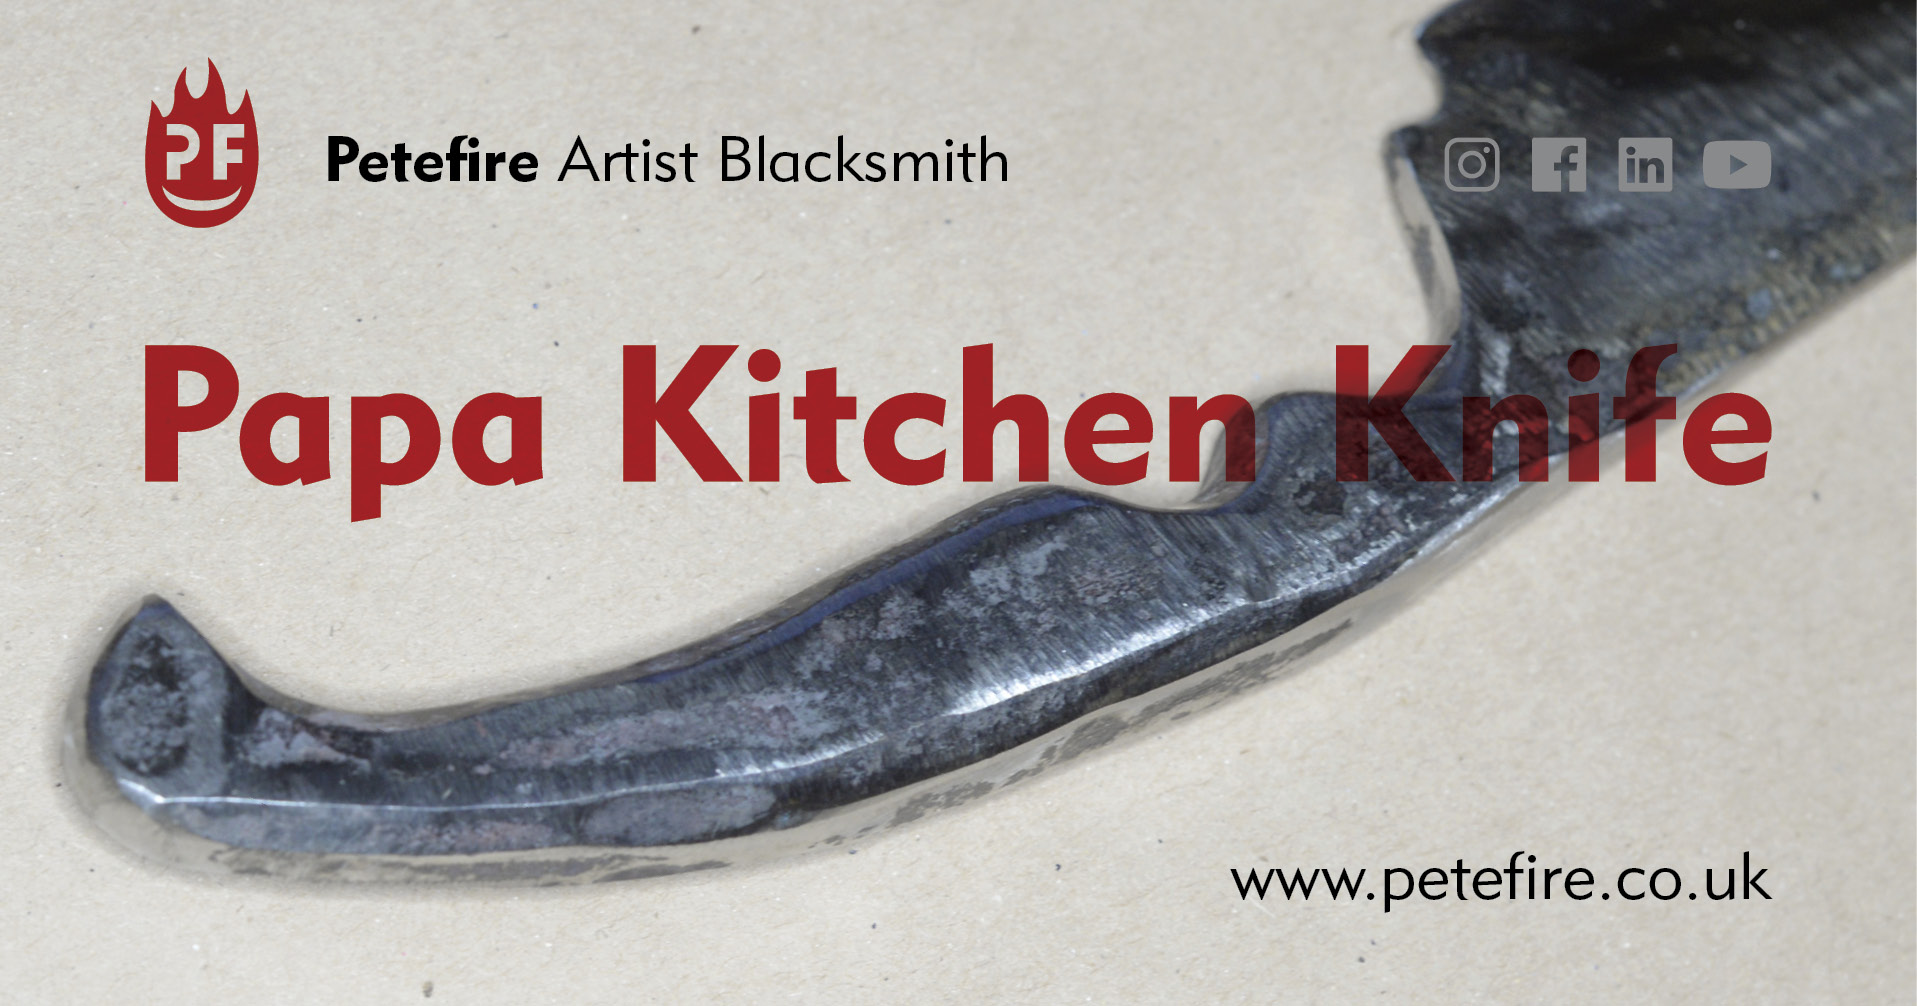 Papa hand forged kitchen knife, made in Watford, Herts by Petefire Artist Blacksmith